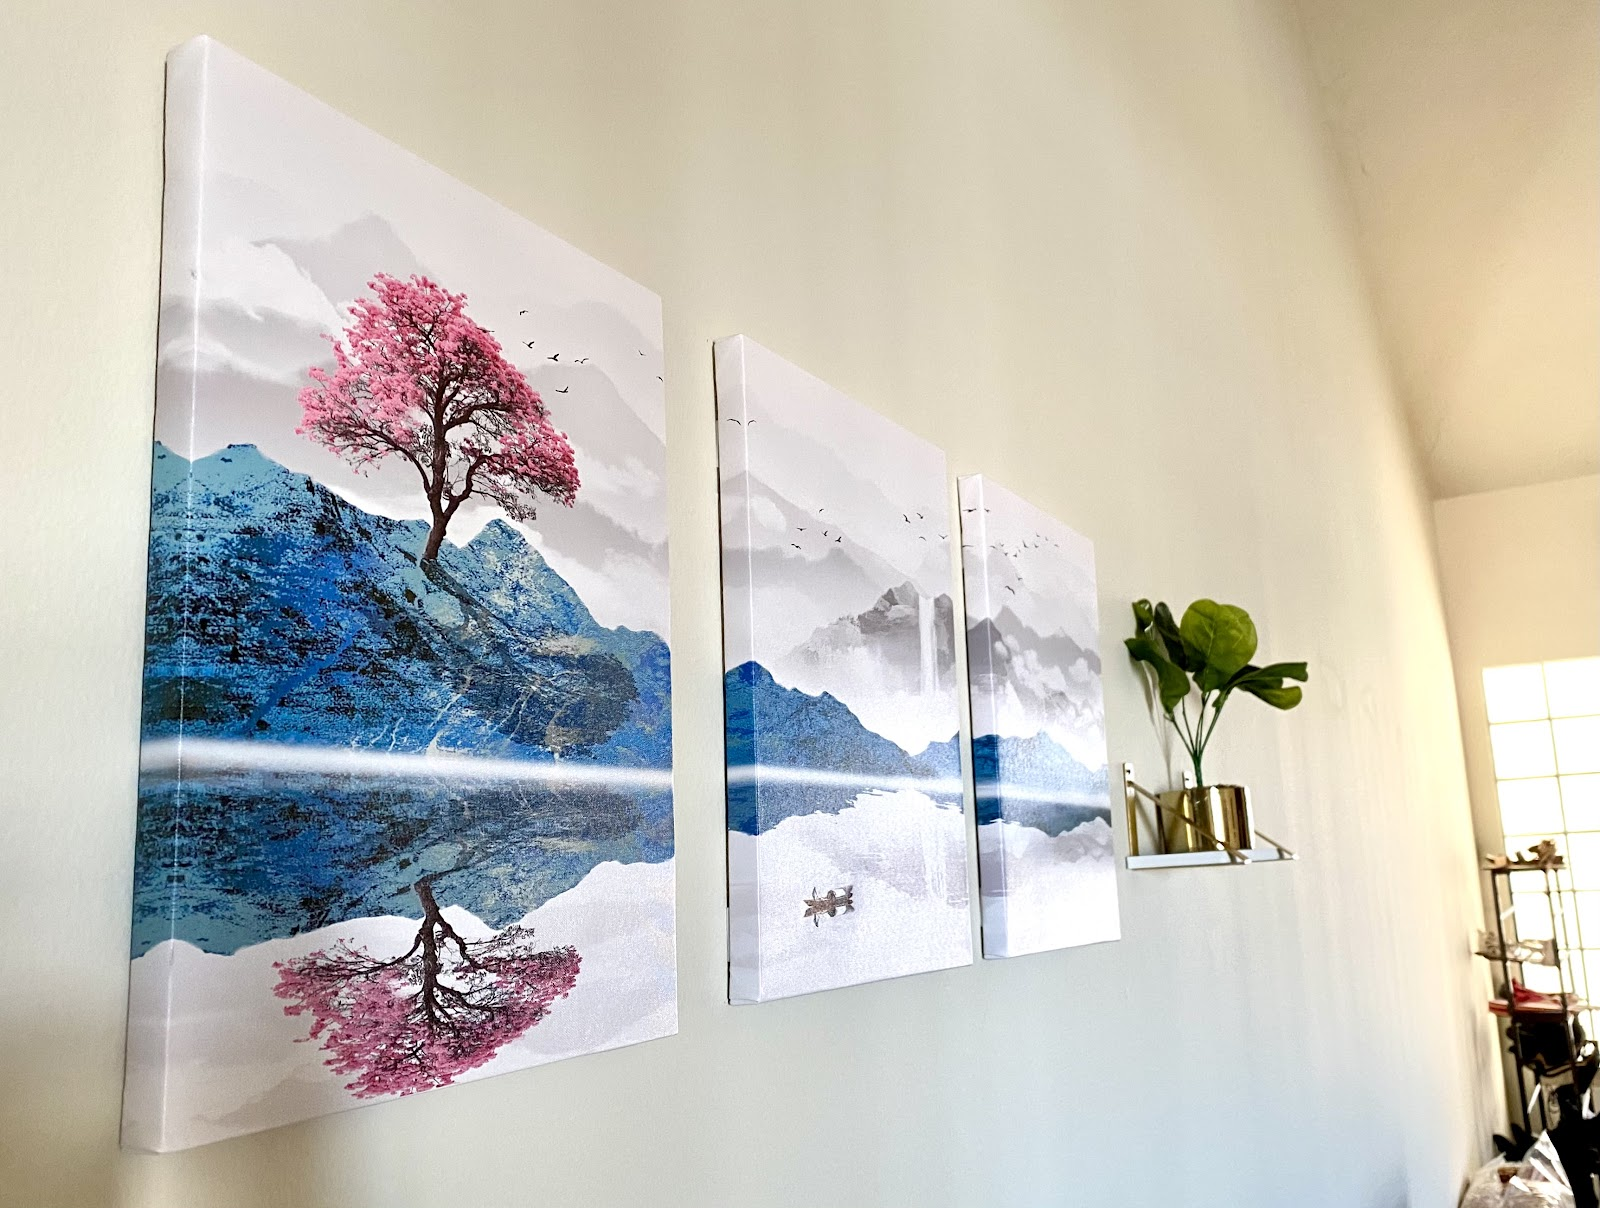 minimalist home decor featuring cherry blossom panel paintings and plant on shelf